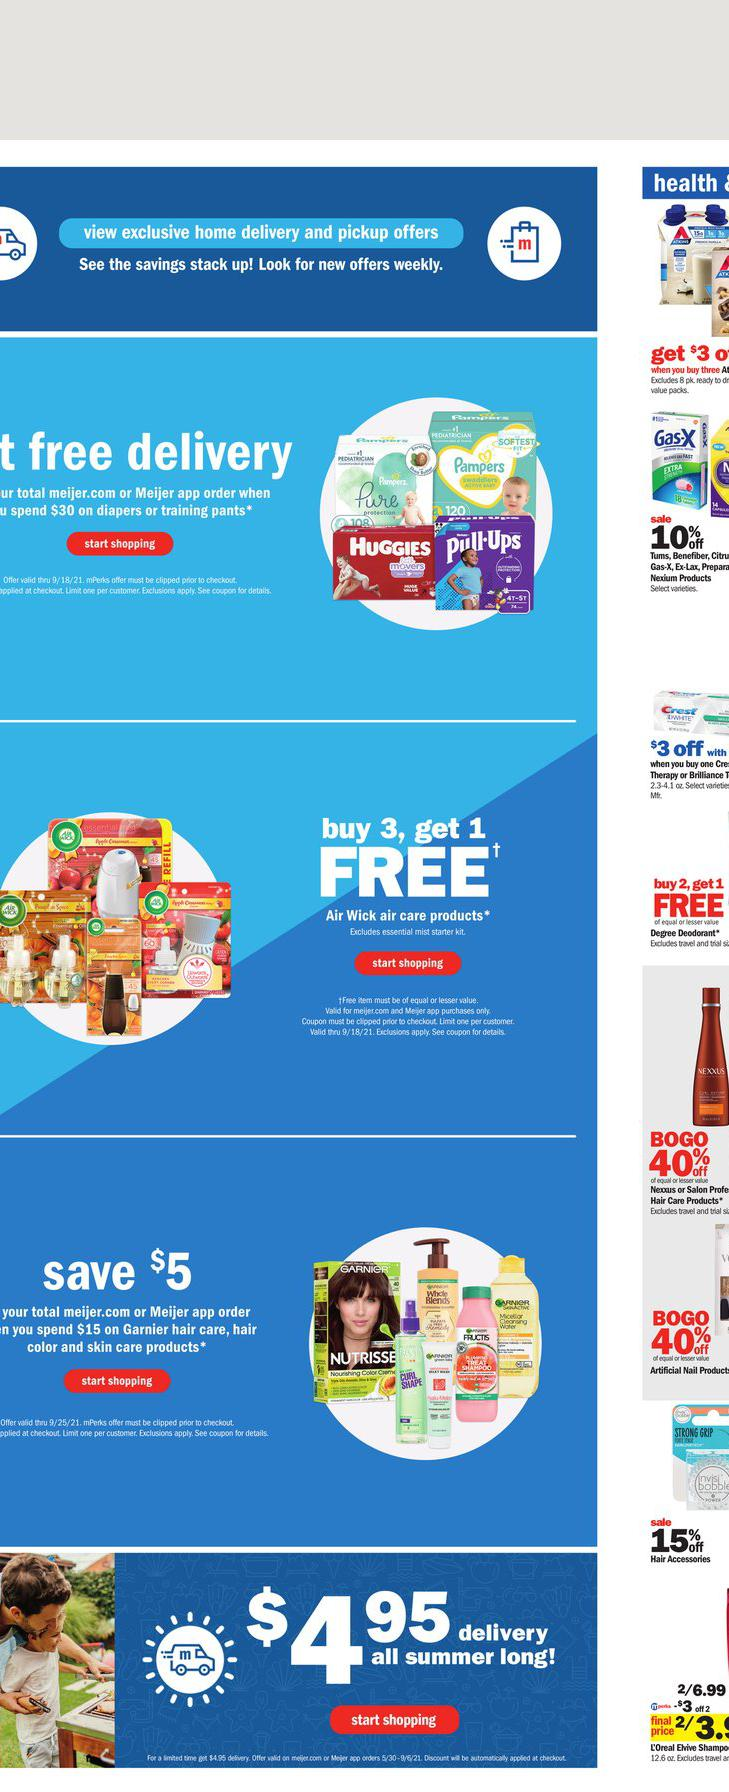 12.09.2021 Meijer ad 16. page